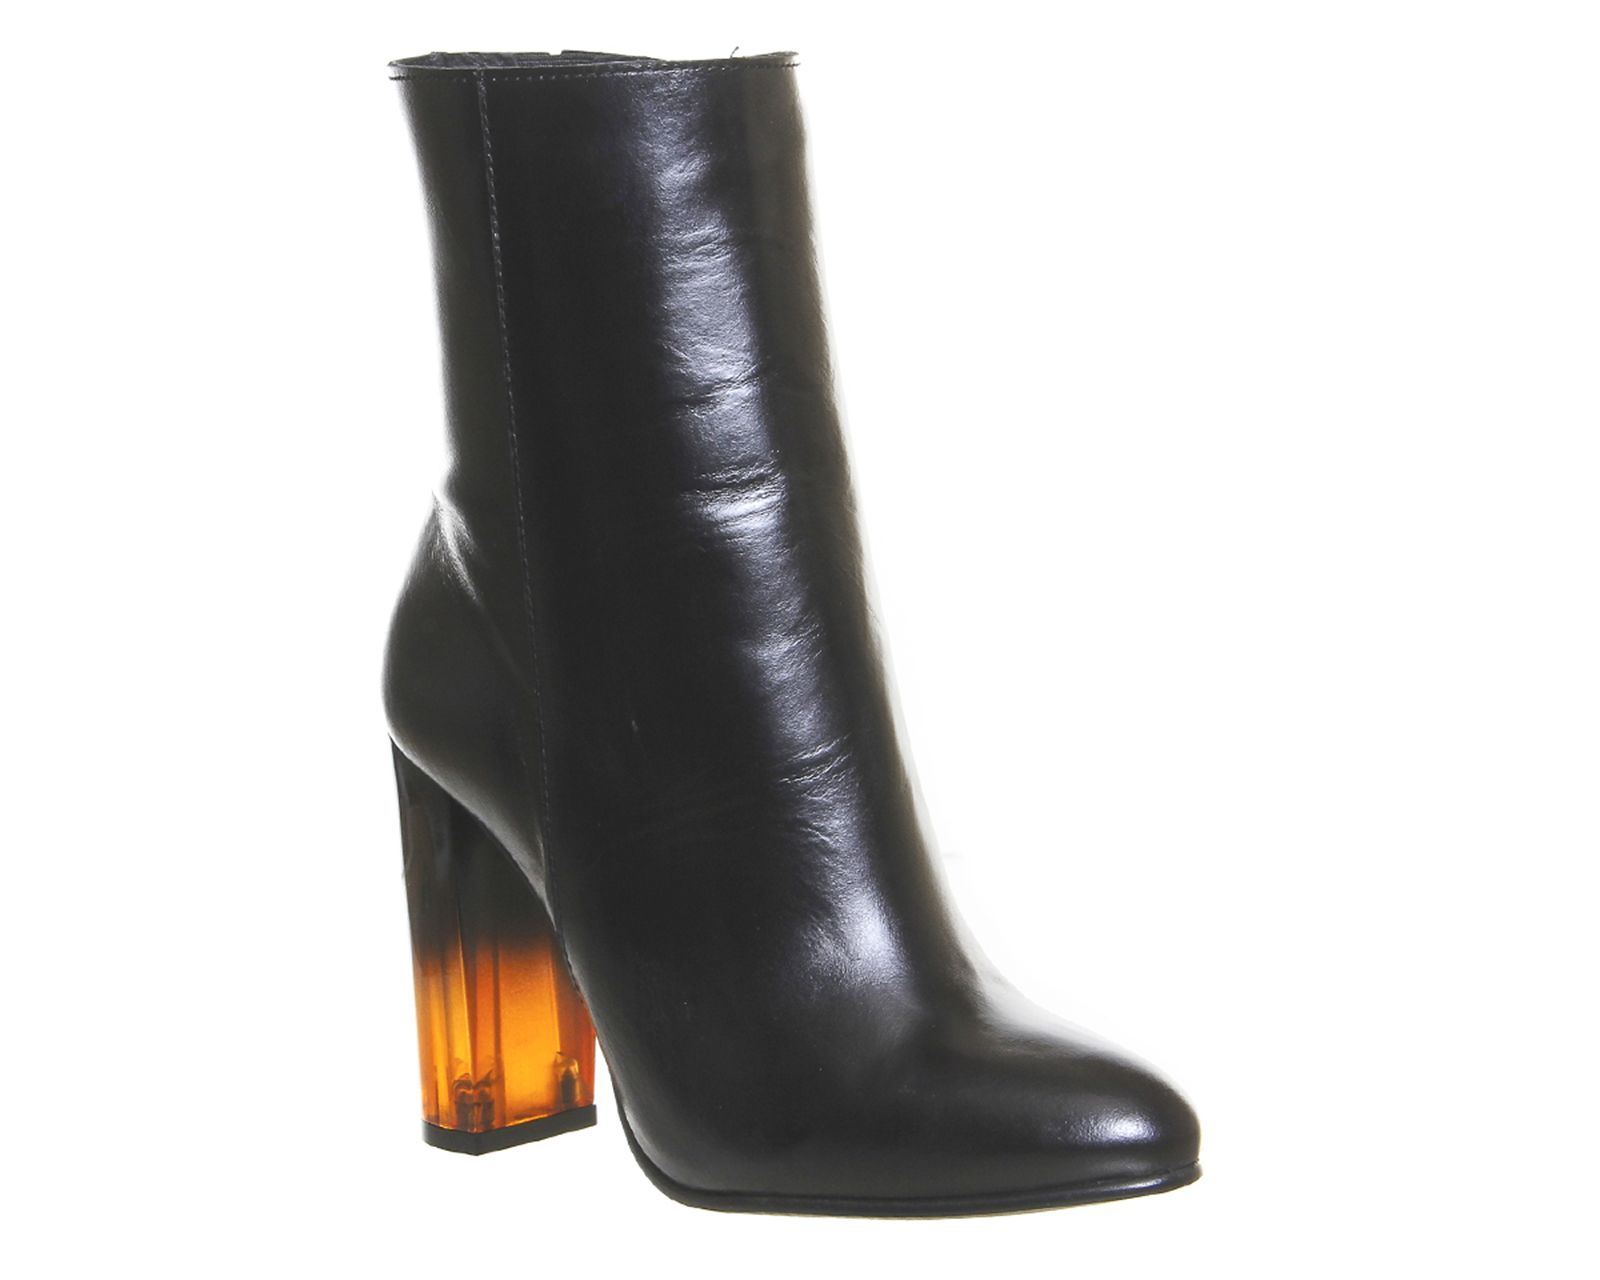 e090dedc33f4 Buy Black Leather Tortoise Shell Heel Office Immense High Cut Ankle Boots  from OFFICE.co.uk.